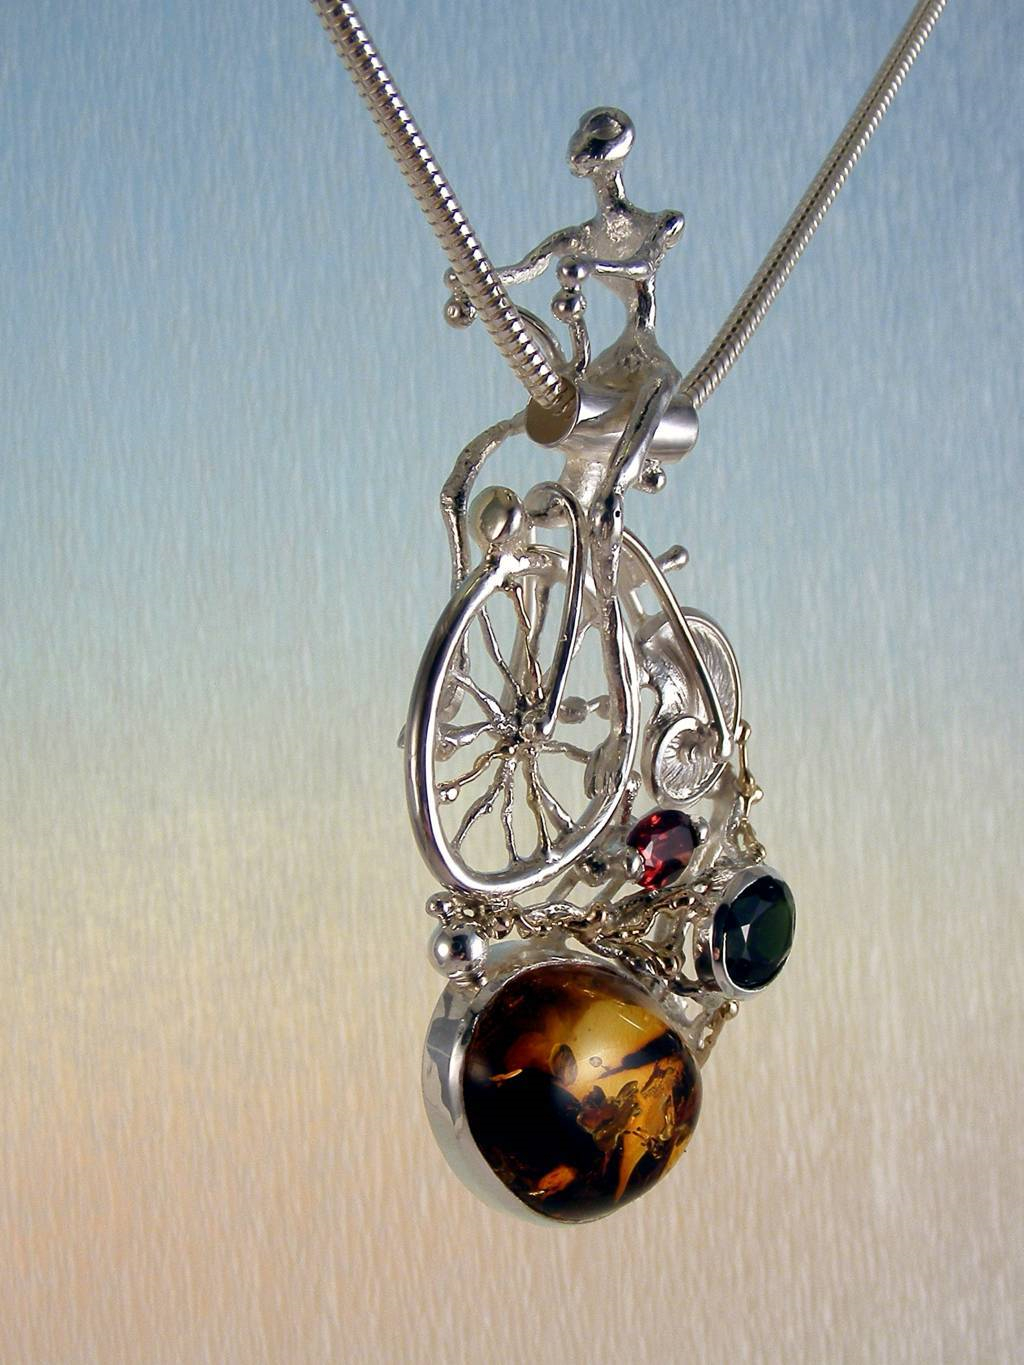 gregory pyra piro sculptural pendant 4287, artists during lockdown making handcrafted jewellery, makers during lockdown who make handcrafted jewellery, galleries during lockdown with handcrafted jewellery, historical high wheel bicycle sculptural pendant, pendant with bicycle that has shell wheel, penedant with facted gemstones and amber, pendant with green tourmaline and garnet, jewellery sold in art galleries